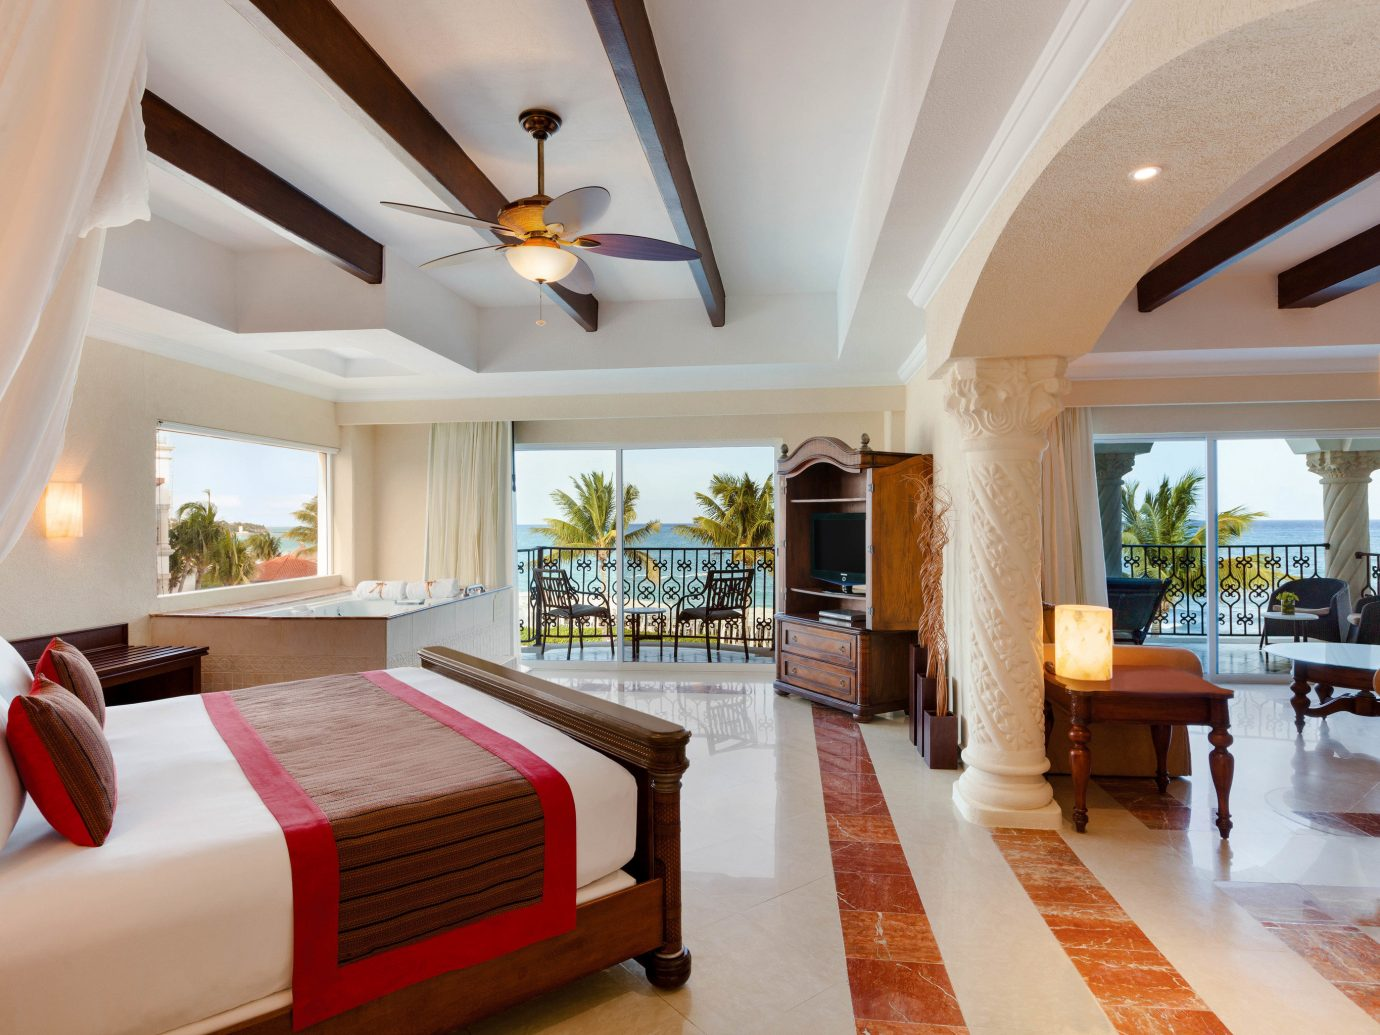 All-inclusive All-Inclusive Resorts Mexico Riviera Maya, Mexico indoor floor wall room Living ceiling window estate interior design furniture real estate Suite living room Resort white penthouse apartment Villa decorated nice hotel Modern Bedroom wood